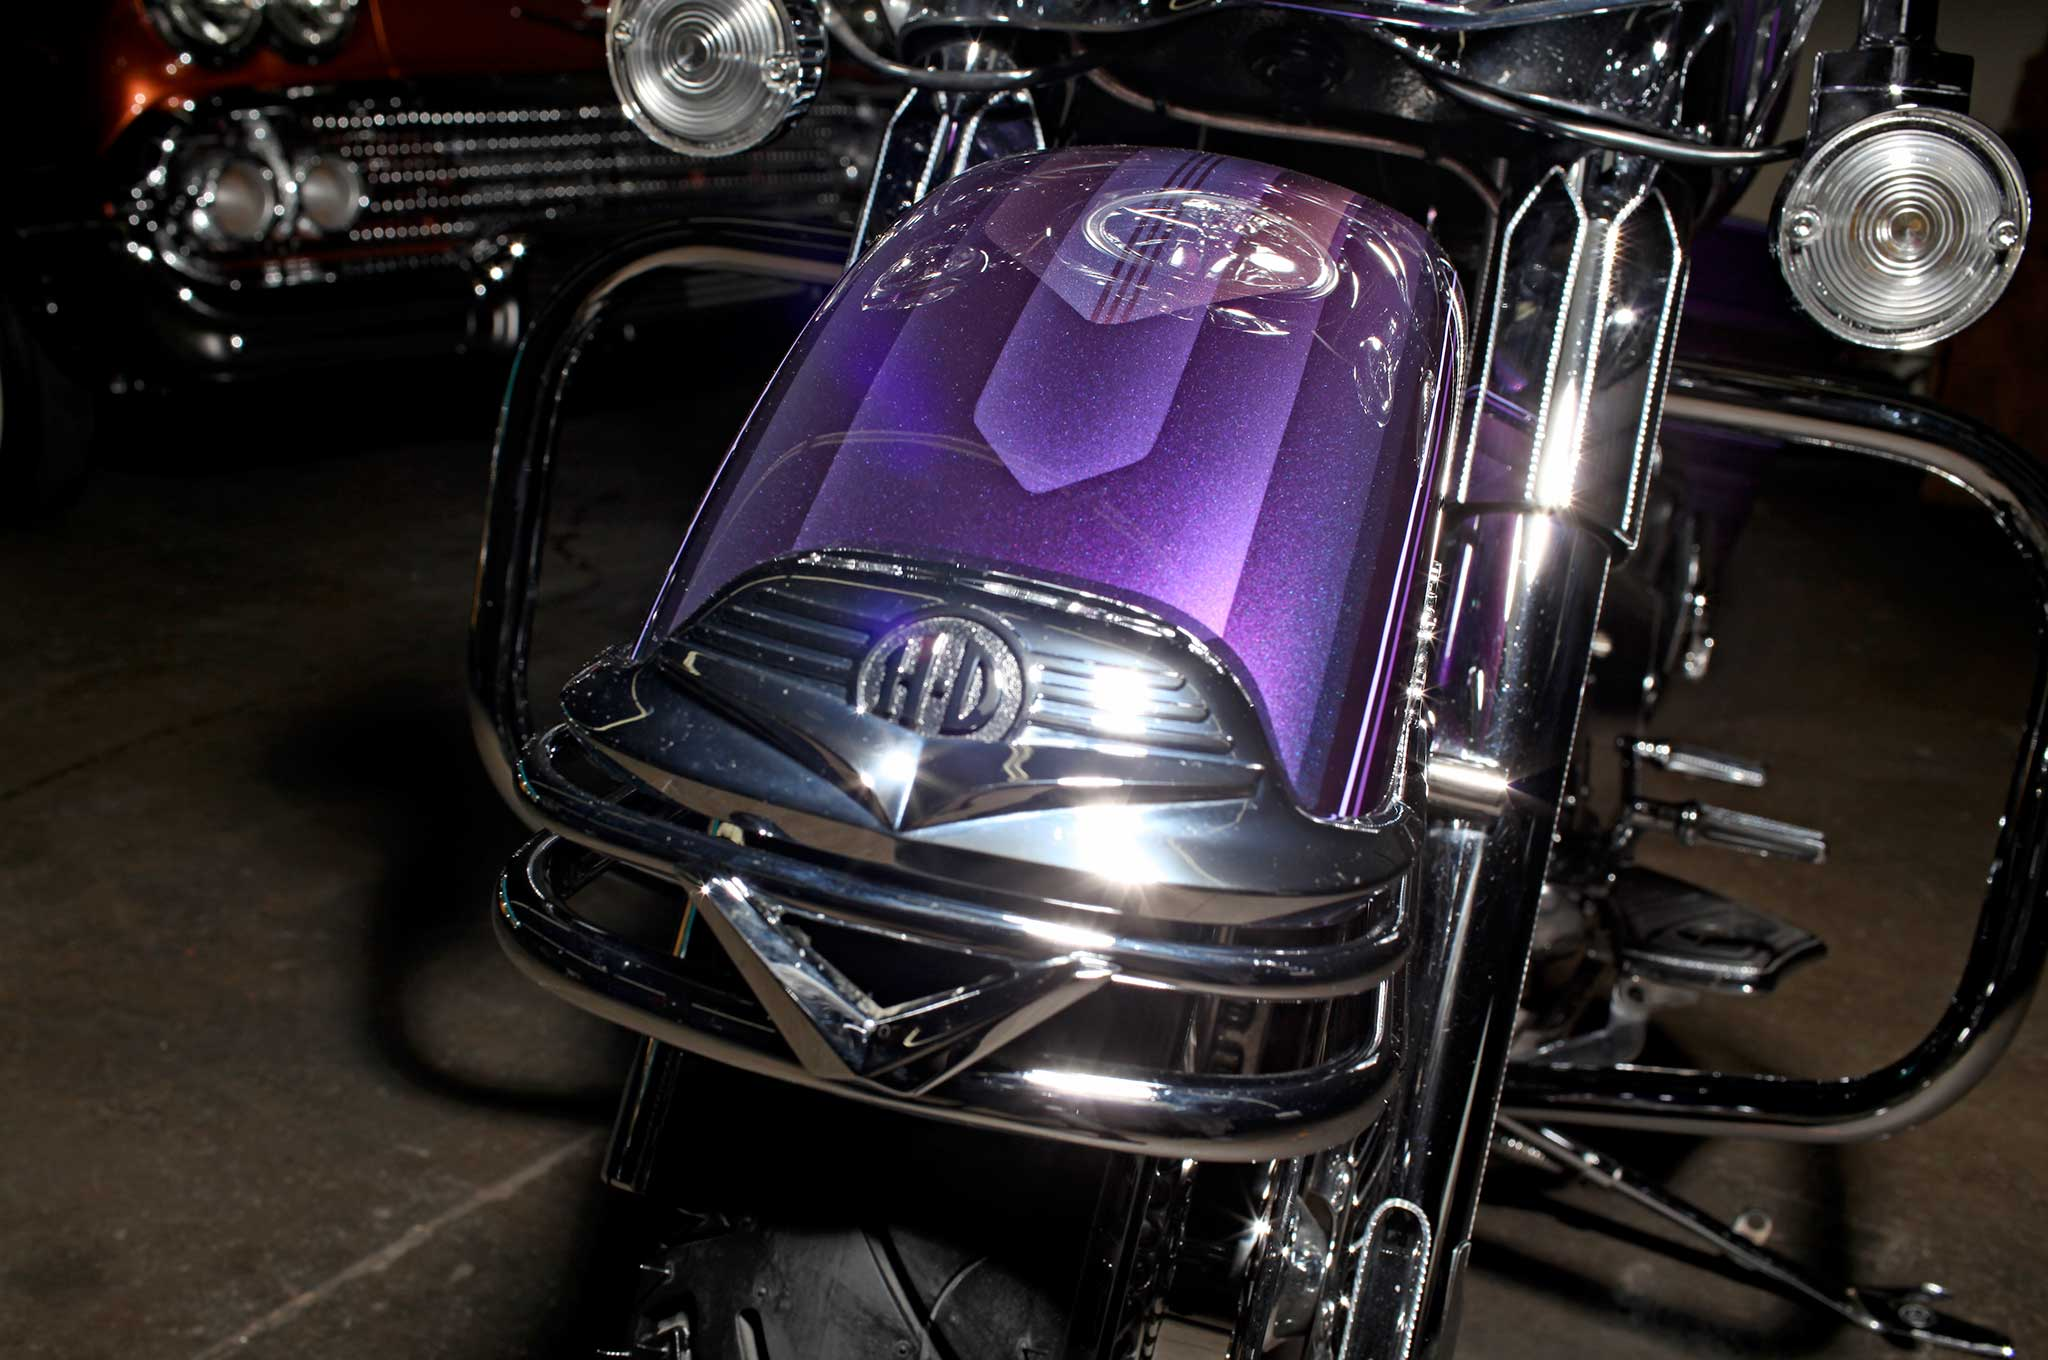 2001-harley-davidson-road-king-front-fender-garnish